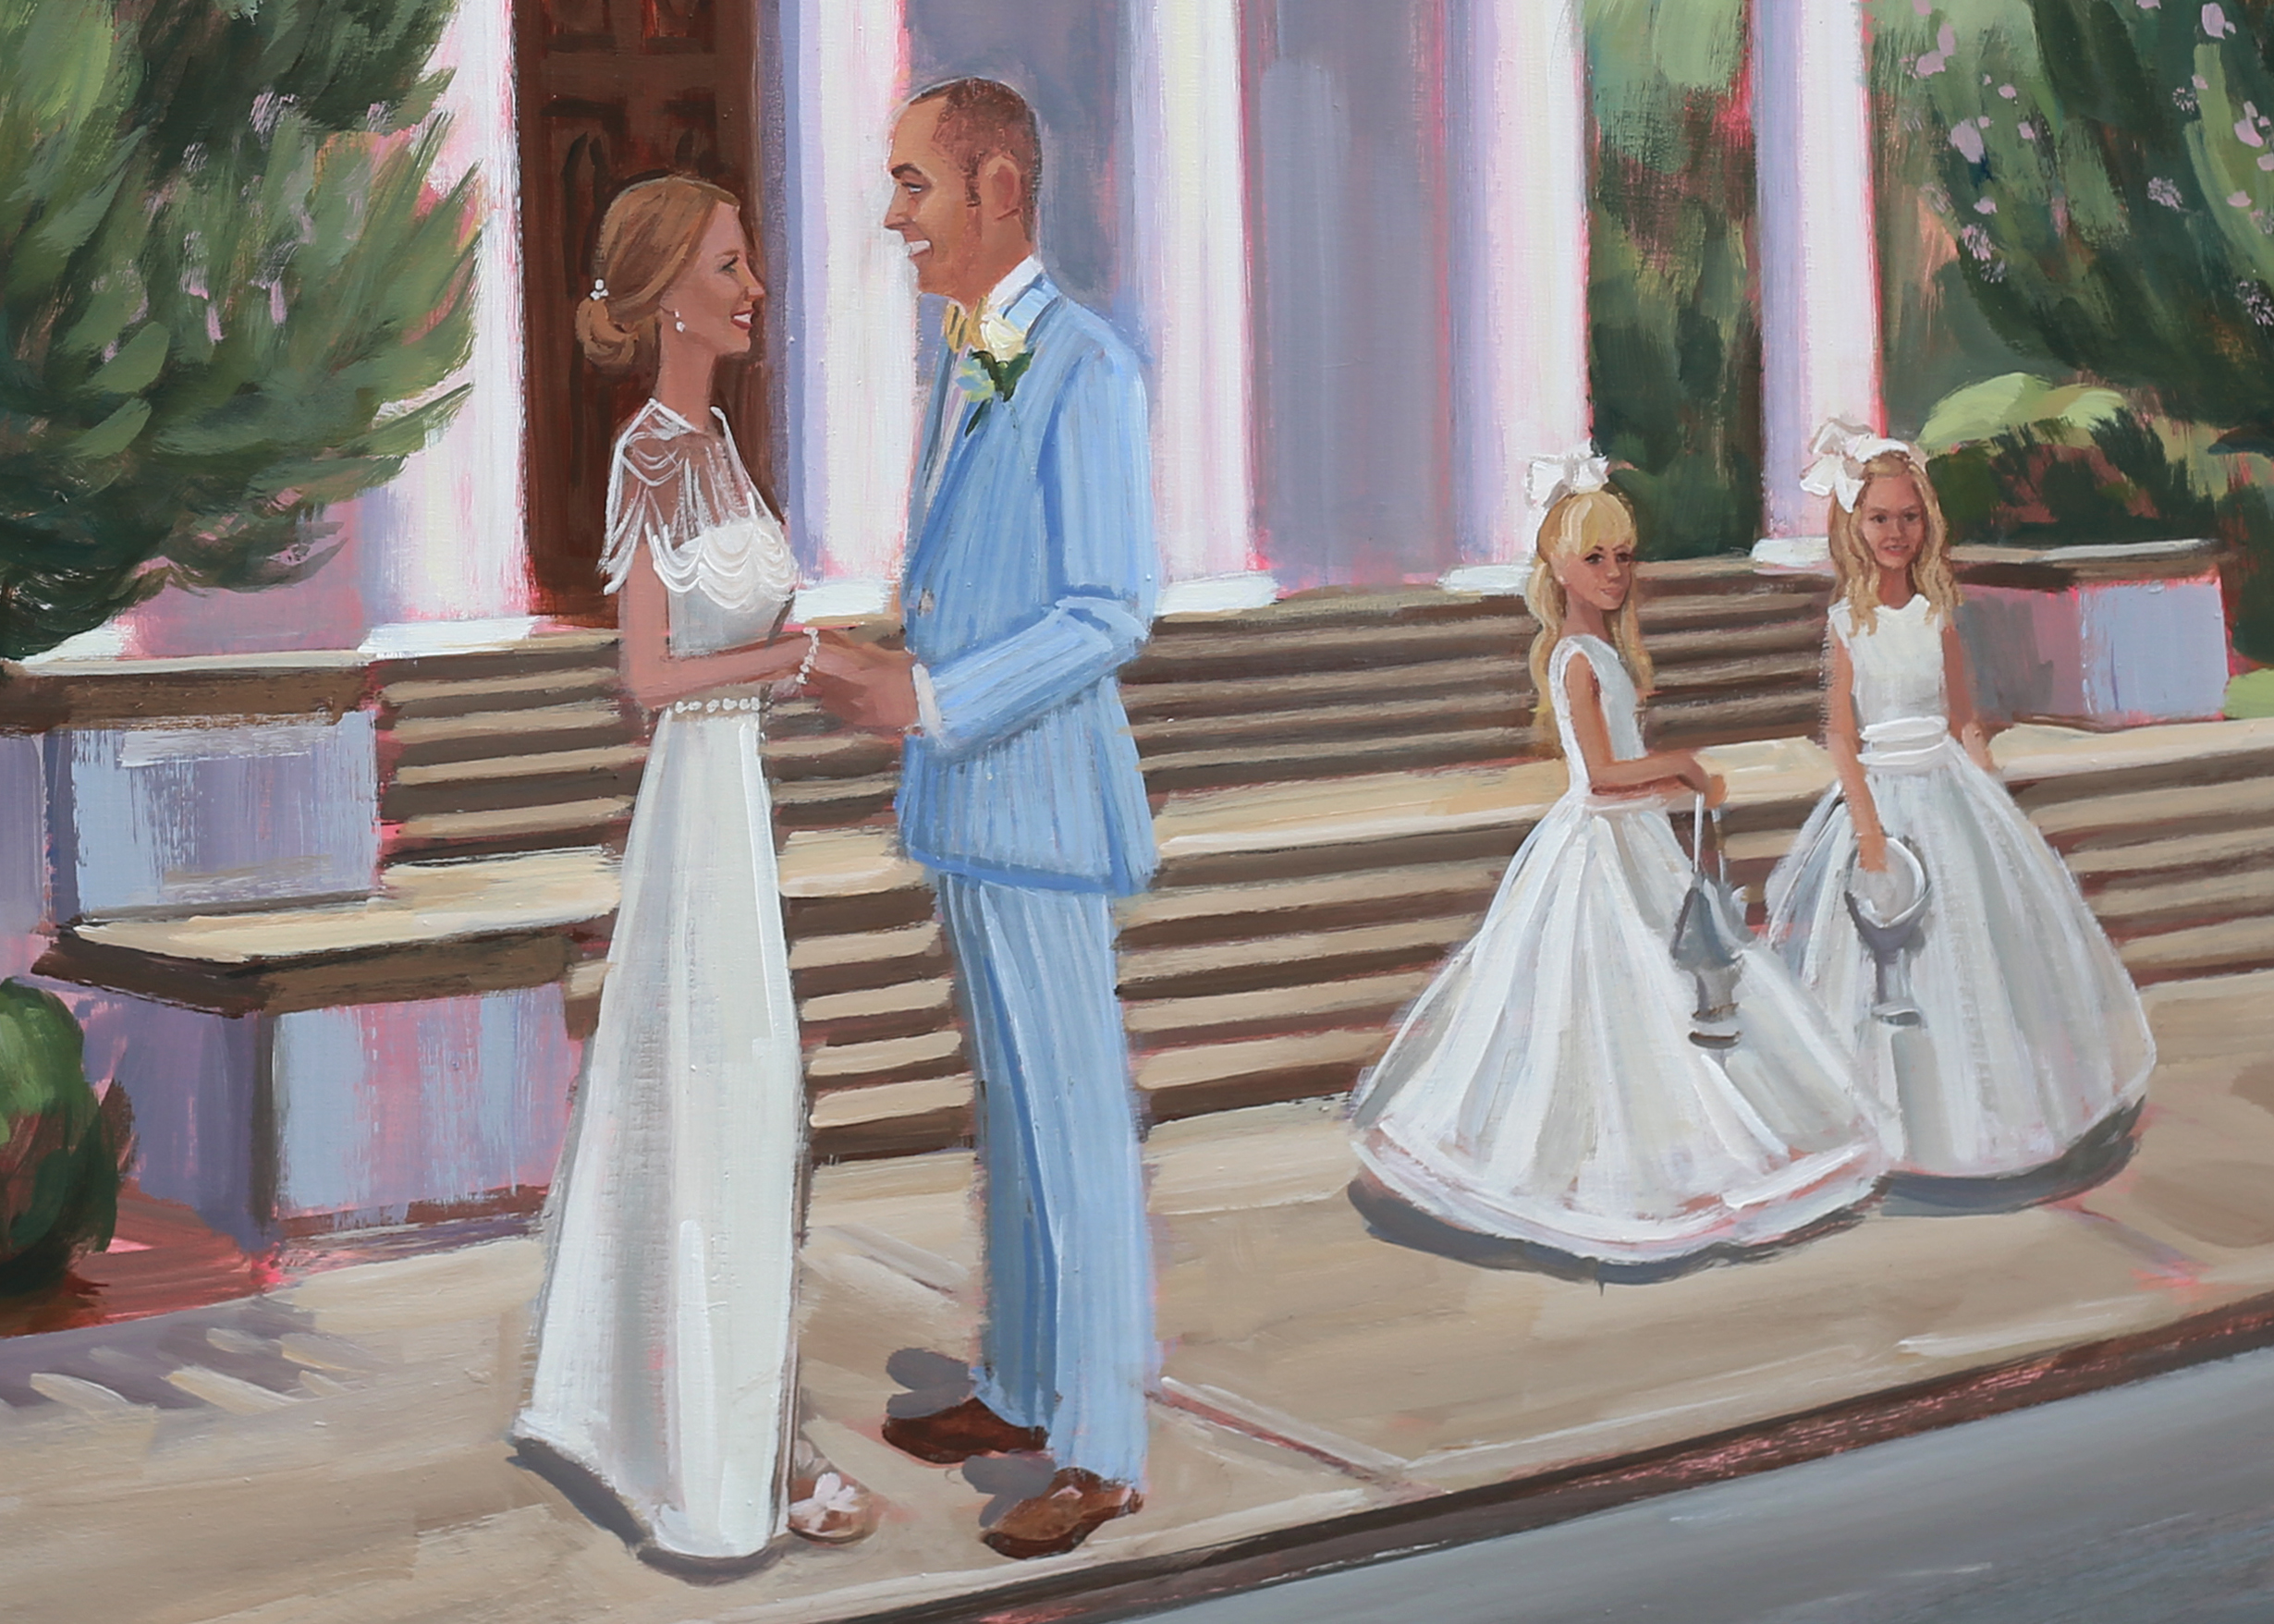 Anne + Jason captured on canvas live with their two daughter's by Charleston's live wedding painter, Ben Keys, of Wed on Canvas.